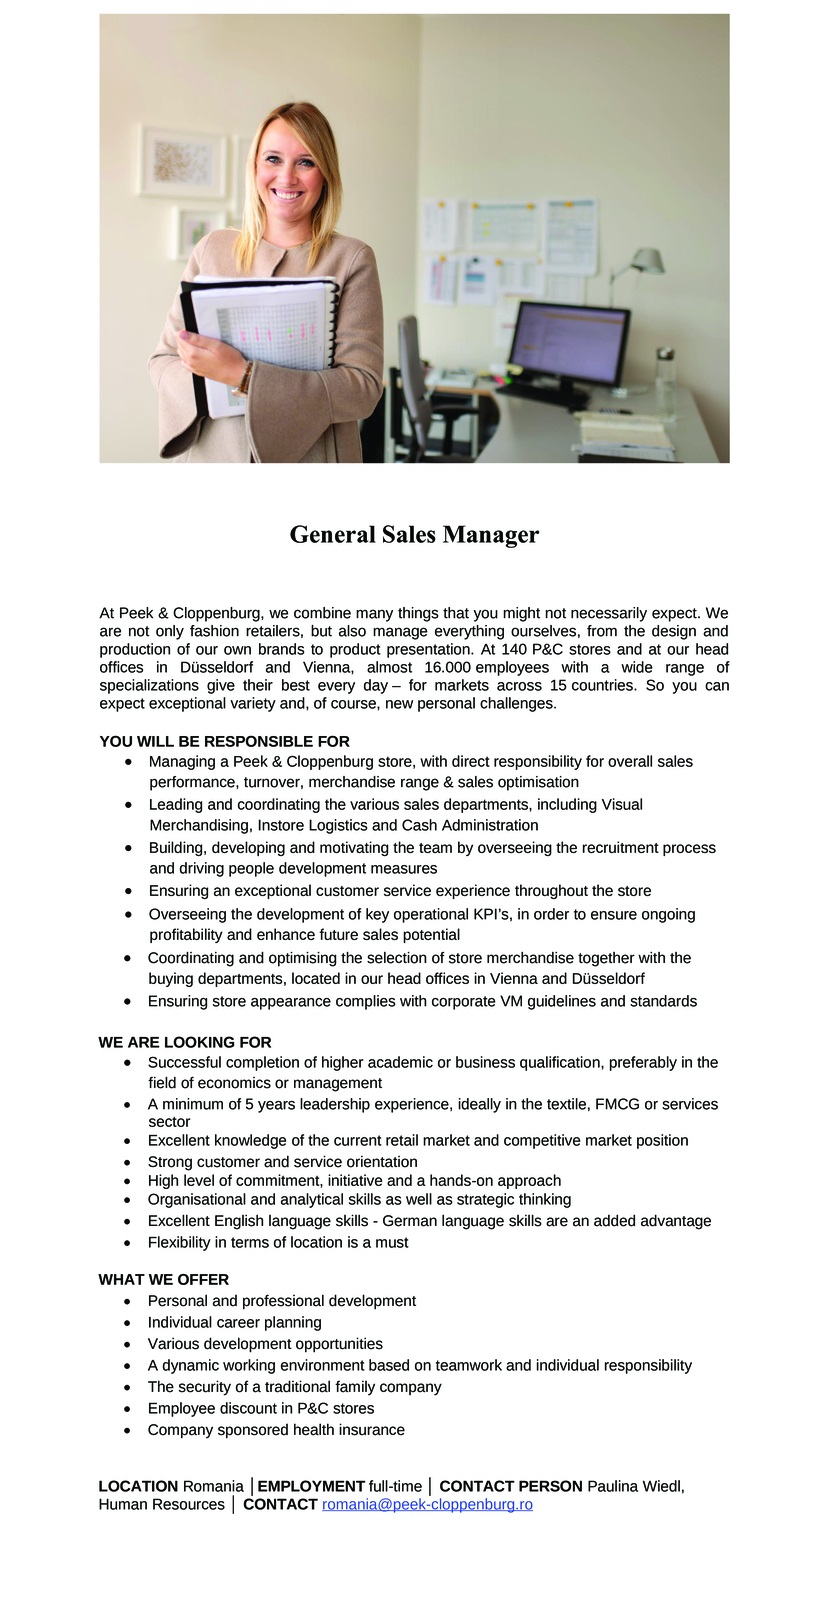 General Sales Manager At Peek & Cloppenburg, we combine many things that you might not necessarily expect. We are not only fashion retailers, but also manage everything ourselves, from the design and production of our own brands to product presentation. At 140 P&C stores and at our head offices in Düsseldorf and Vienna, almost 16.000 employees with a wide range of specializations give their best every day – for markets across 15 countries. So you can expect exceptional variety and, of course, new personal challenges. YOU WILL BE RESPONSIBLE FOR  Managing a Peek & Cloppenburg store, with direct responsibility for overall sales performance, turnover, merchandise range & sales optimisation  Leading and coordinating the various sales departments, including Visual Merchandising, Instore Logistics and Cash Administration  Building, developing and motivating the team by overseeing the recruitment process and driving people development measures  Ensuring an exceptional customer service experience throughout the store  Overseeing the development of key operational KPI's, in order to ensure ongoing profitability and enhance future sales potential  Coordinating and optimising the selection of store merchandise together with the buying departments, located in our head offices in Vienna and Düsseldorf  Ensuring store appearance complies with corporate VM guidelines and standards WE ARE LOOKING FOR  Successful completion of higher academic or business qualification, preferably in the field of economics or management  A minimum of 5 years leadership experience, ideally in the textile, FMCG or services sector  Excellent knowledge of the current retail market and competitive market position  Strong customer and service orientation  High level of commitment, initiative and a hands-on approach  Organisational and analytical skills as well as strategic thinking  Excellent English language skills - German language skills are an added advantage  Flexibility in terms of location is a must